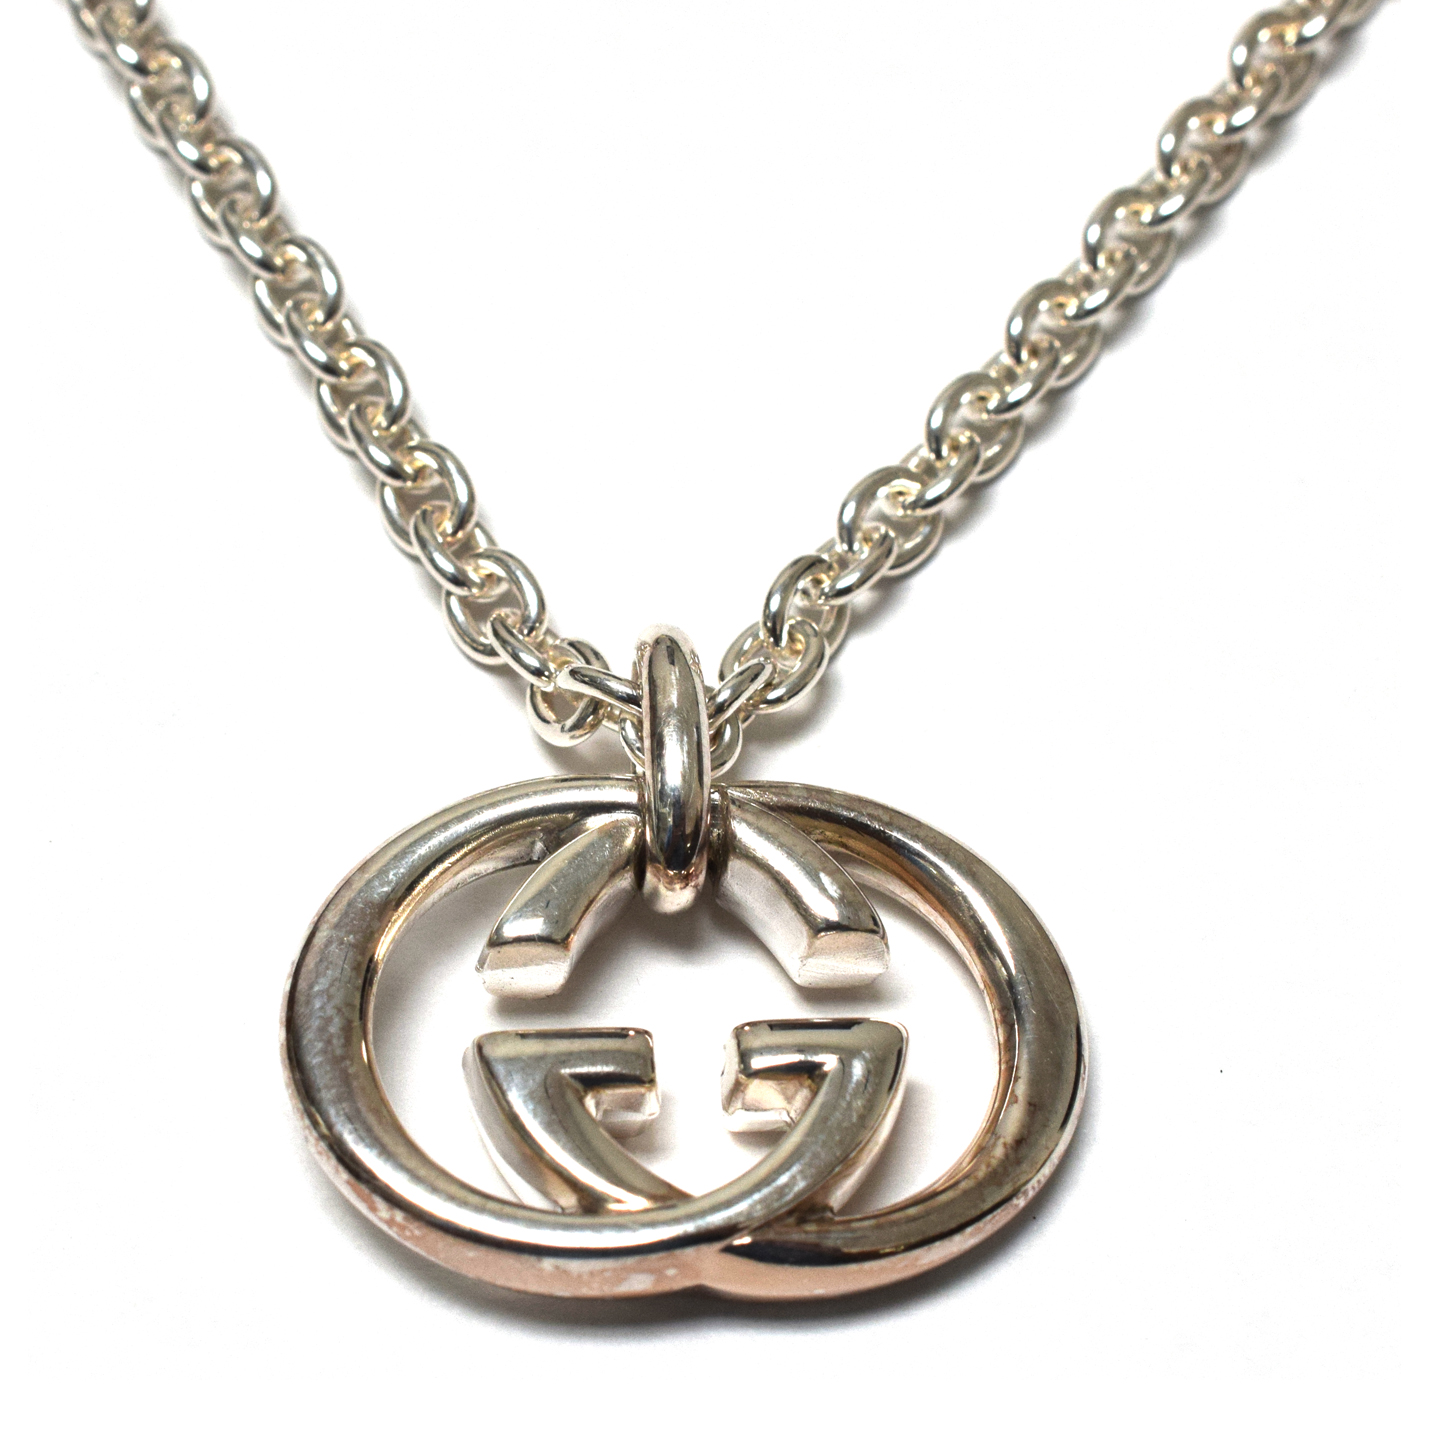 Gucci Sterling Silver Necklace With Interlocking G Motif